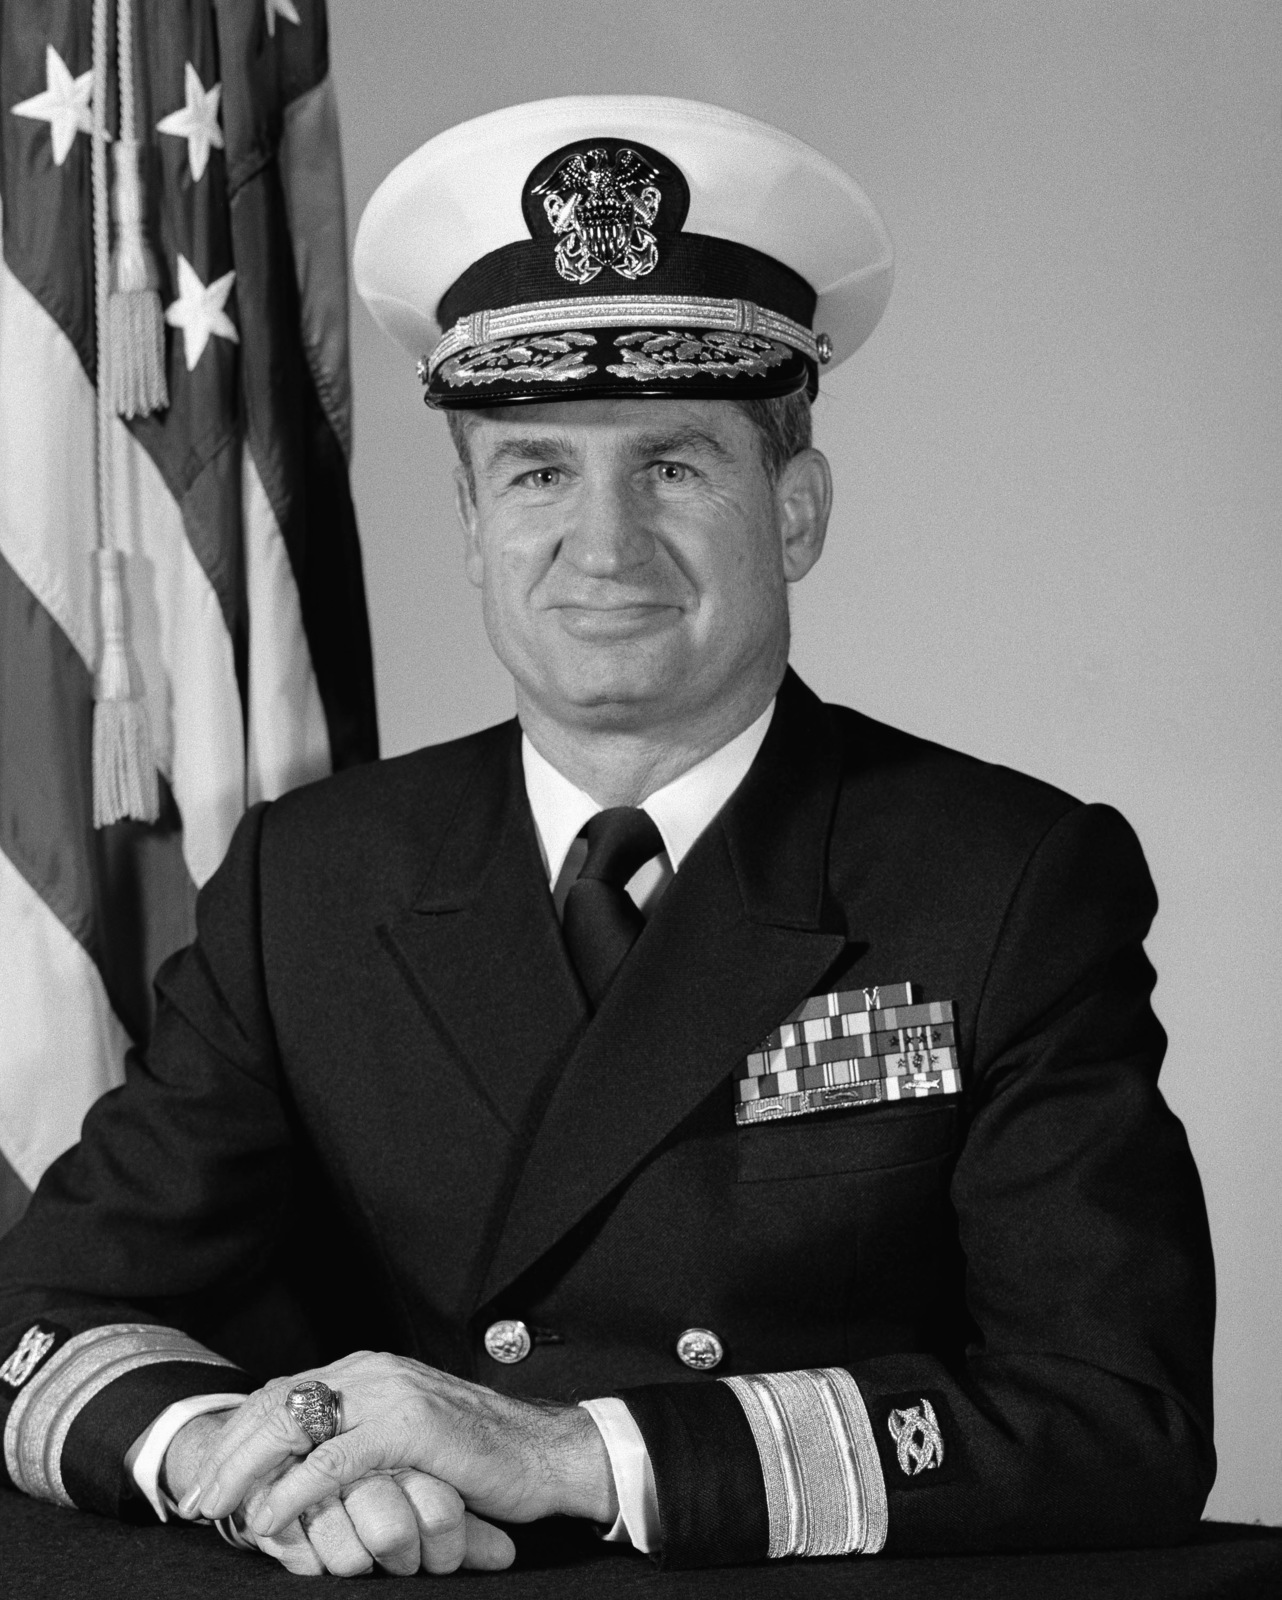 Rear Admiral (lower half) David E. Bottorff, USN (covered)